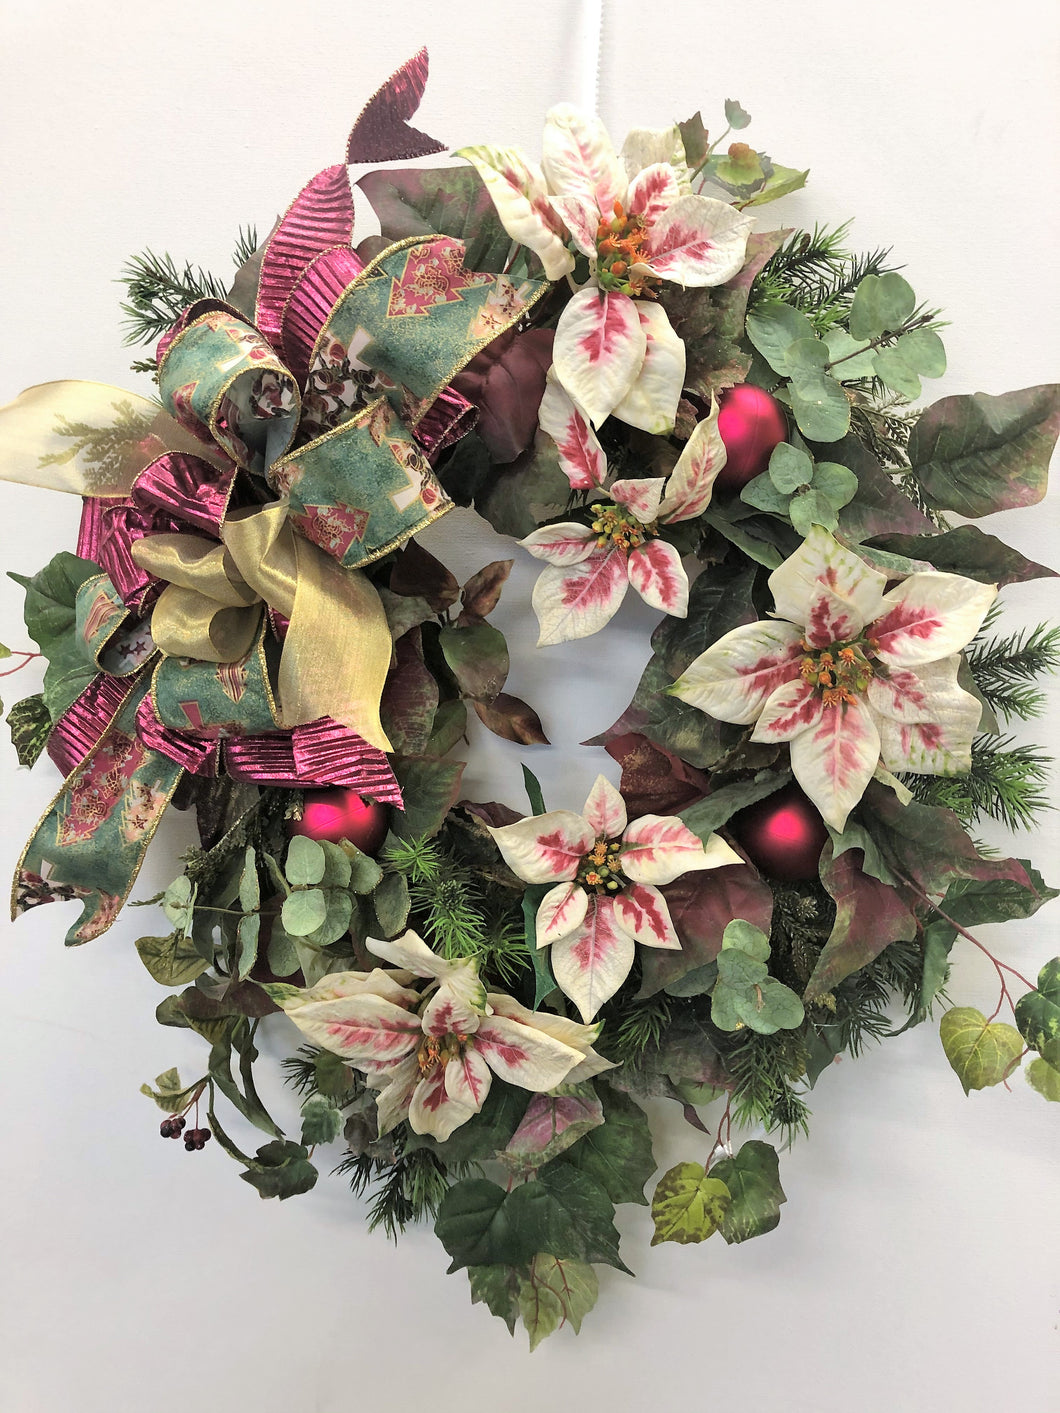 Green, Cream and Burgundy Silk Floral Holiday Wreath with Holiday Balls/Hol20 - April's Garden Wreath